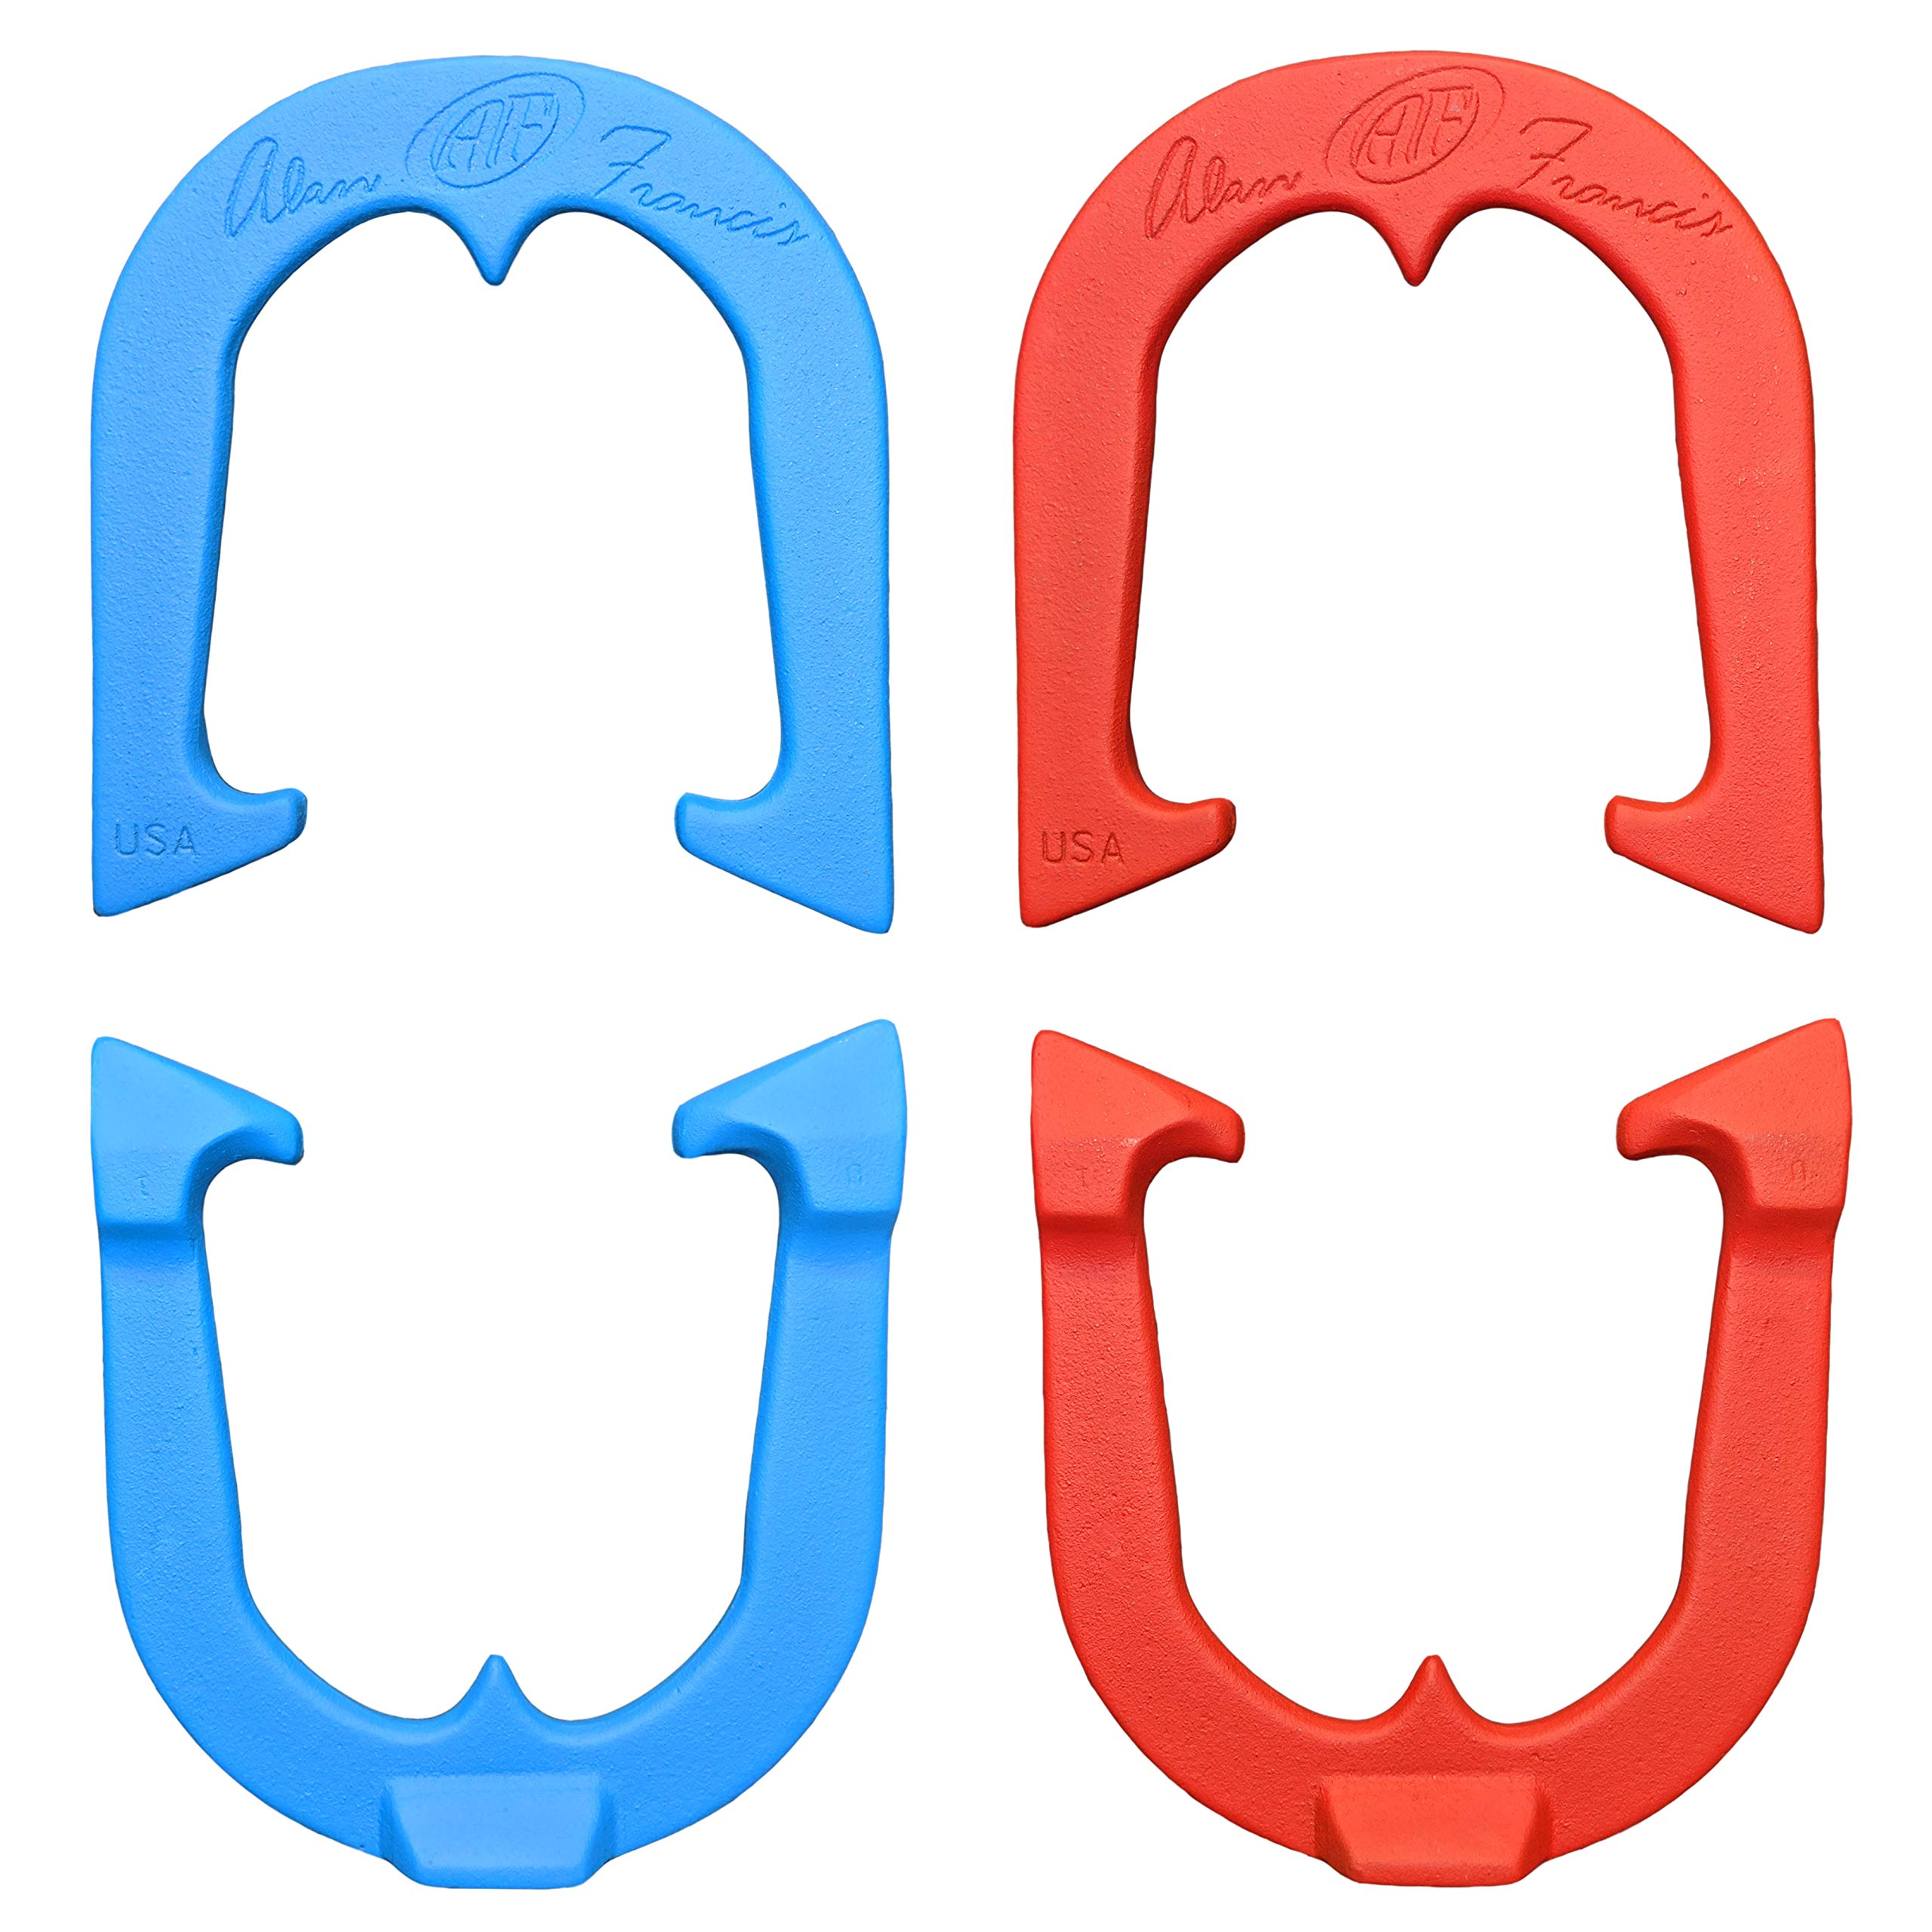 Alan Francis Signature Professional Pitching Horseshoes Set- Made n The USA (Red & Blue- Two Pair Set (4 Shoes)) by Thoroughbred Horseshoes